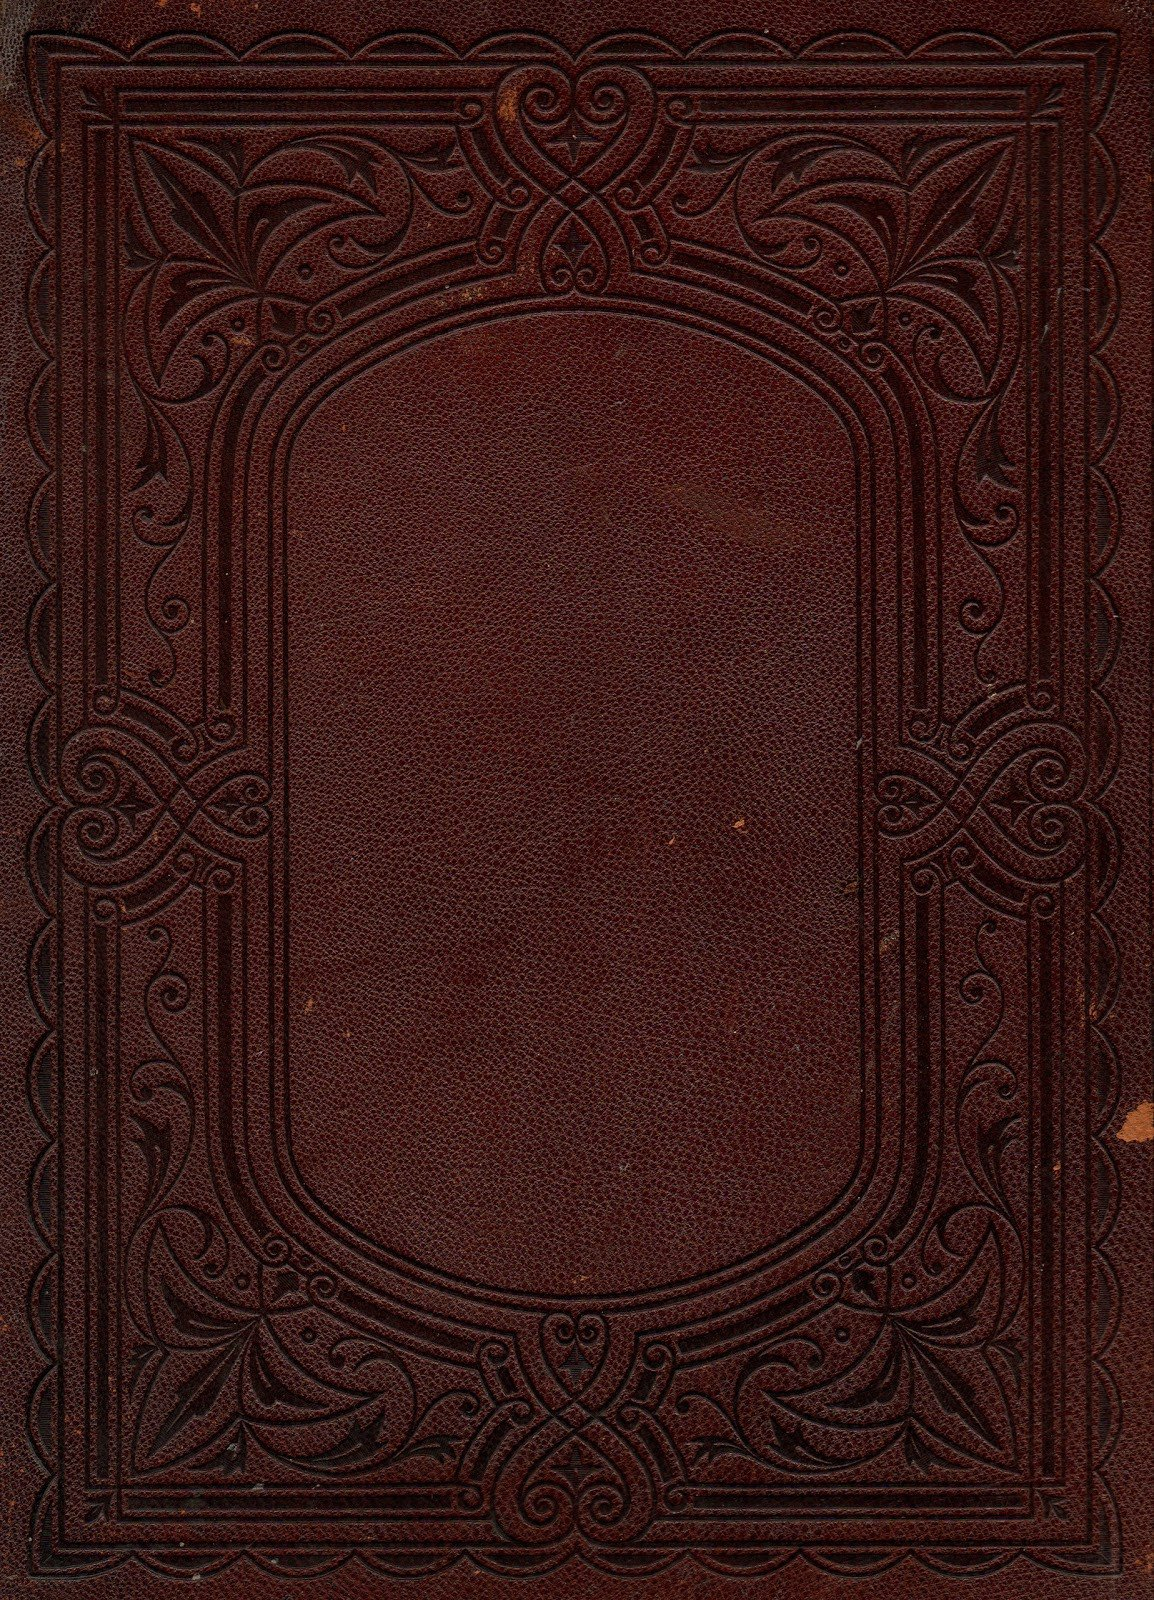 Old Book Cover Template Leaping Frog Designs Antique Book Cover Frame Free Png Image